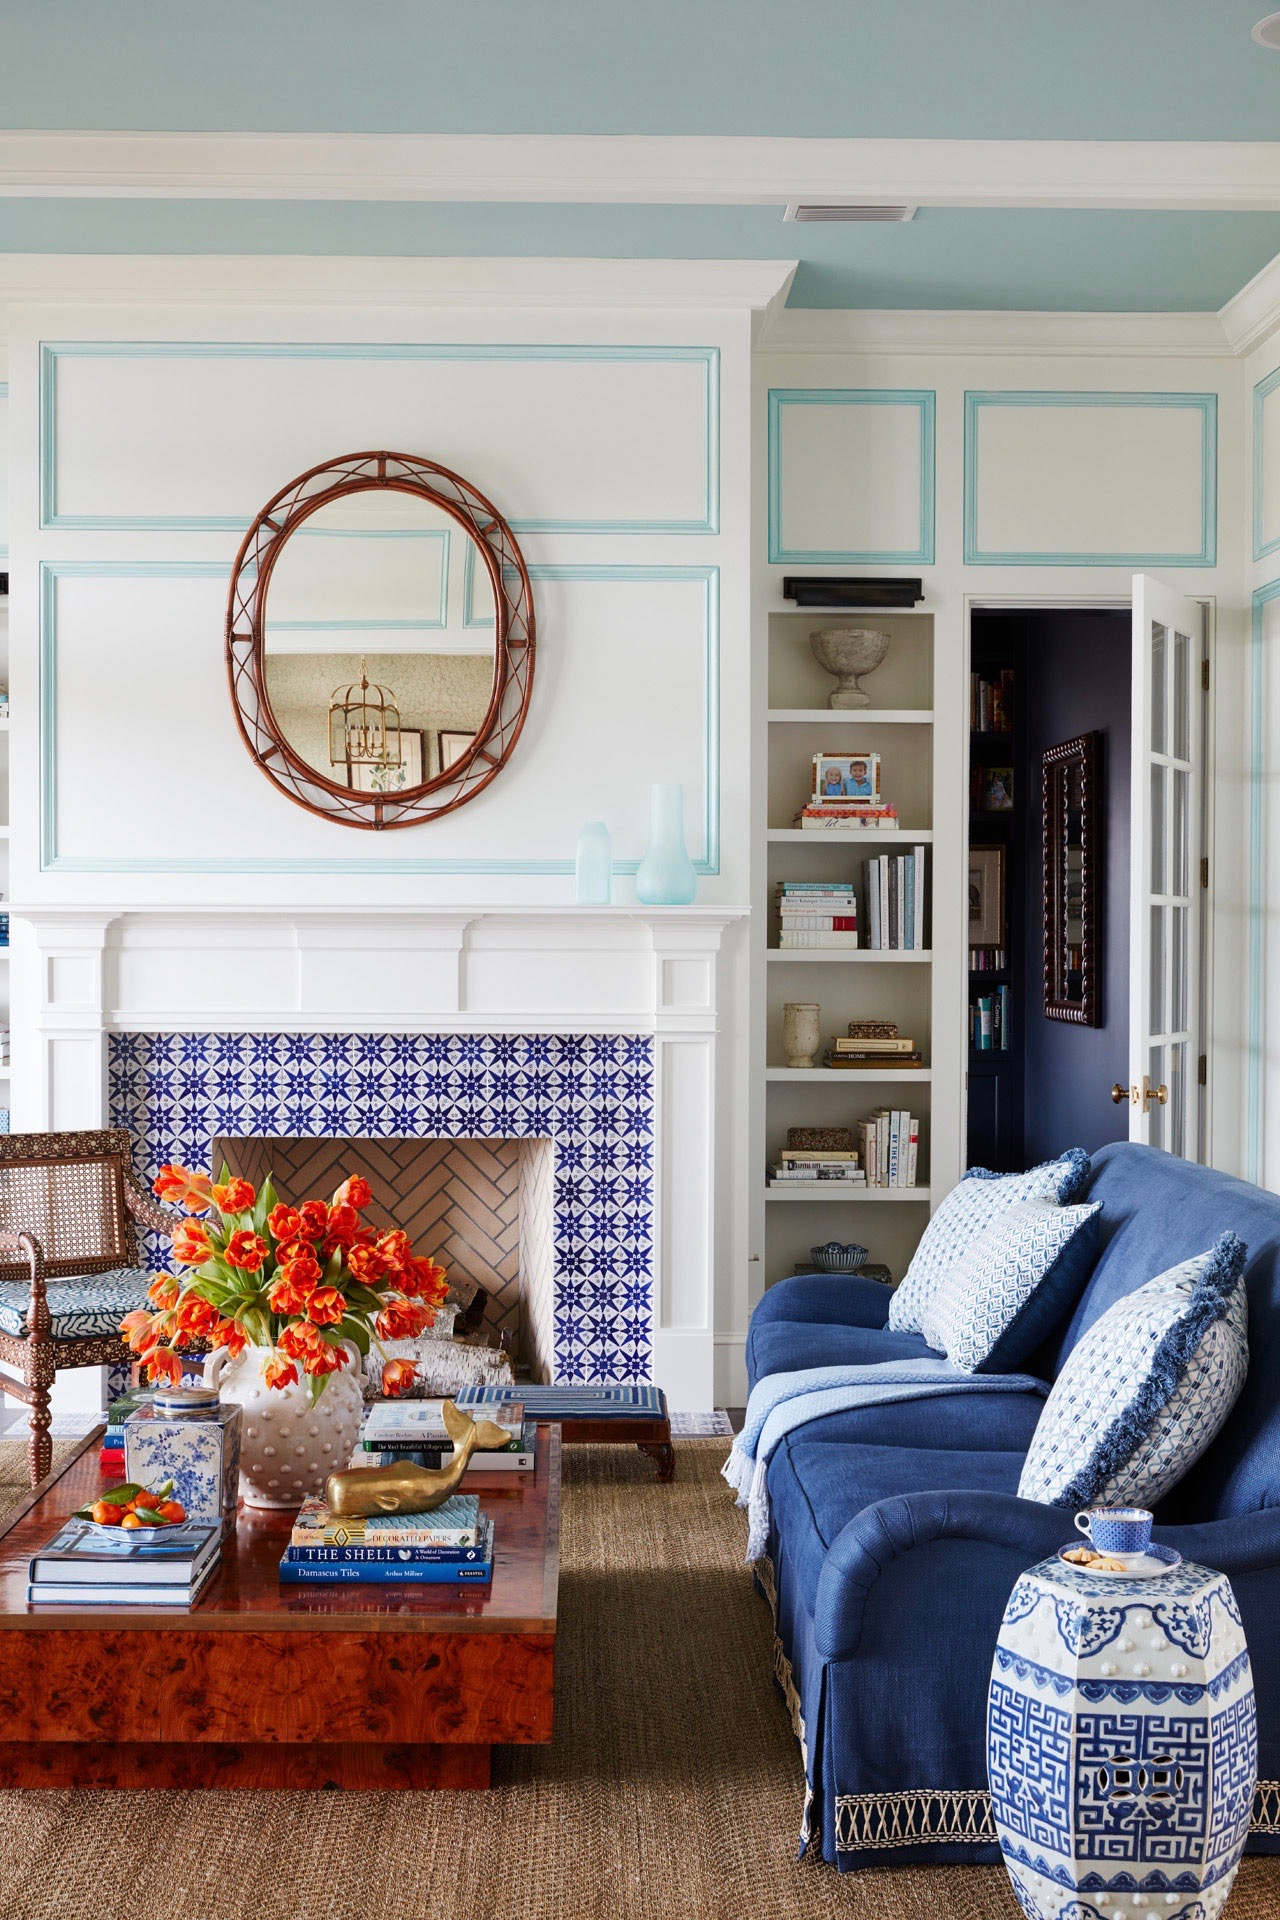 A Classic Blue And White Living Room The Painted Trim